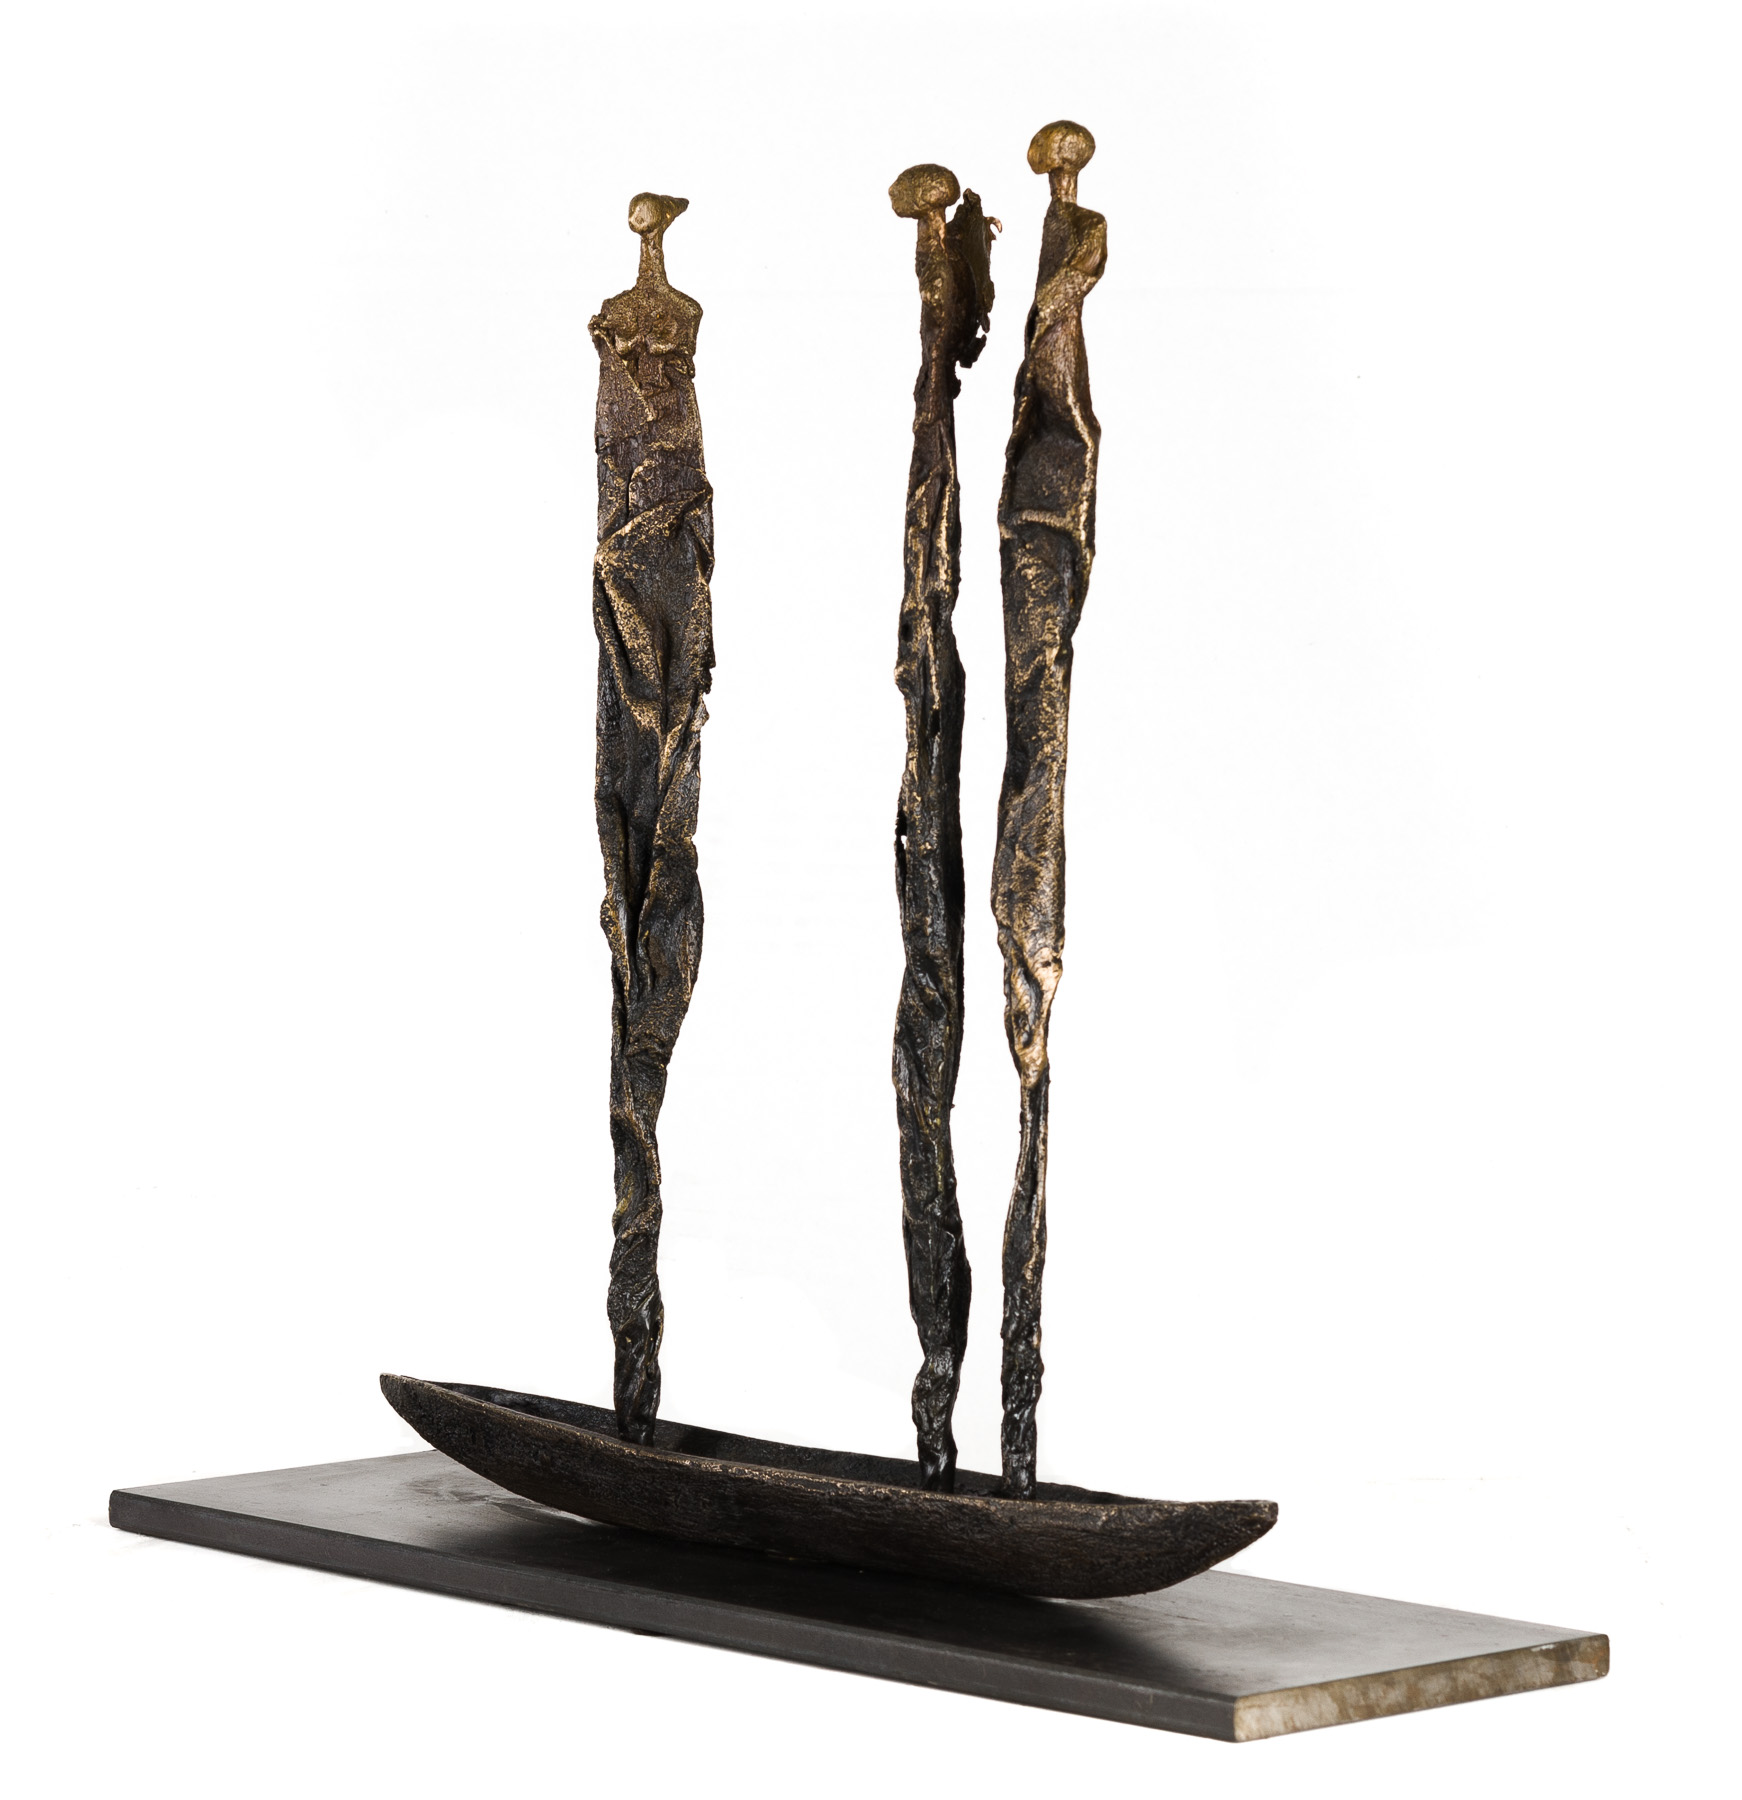 Reaching, 2016, bronze, signed at base, unique, 21 x 18 x 6 inches